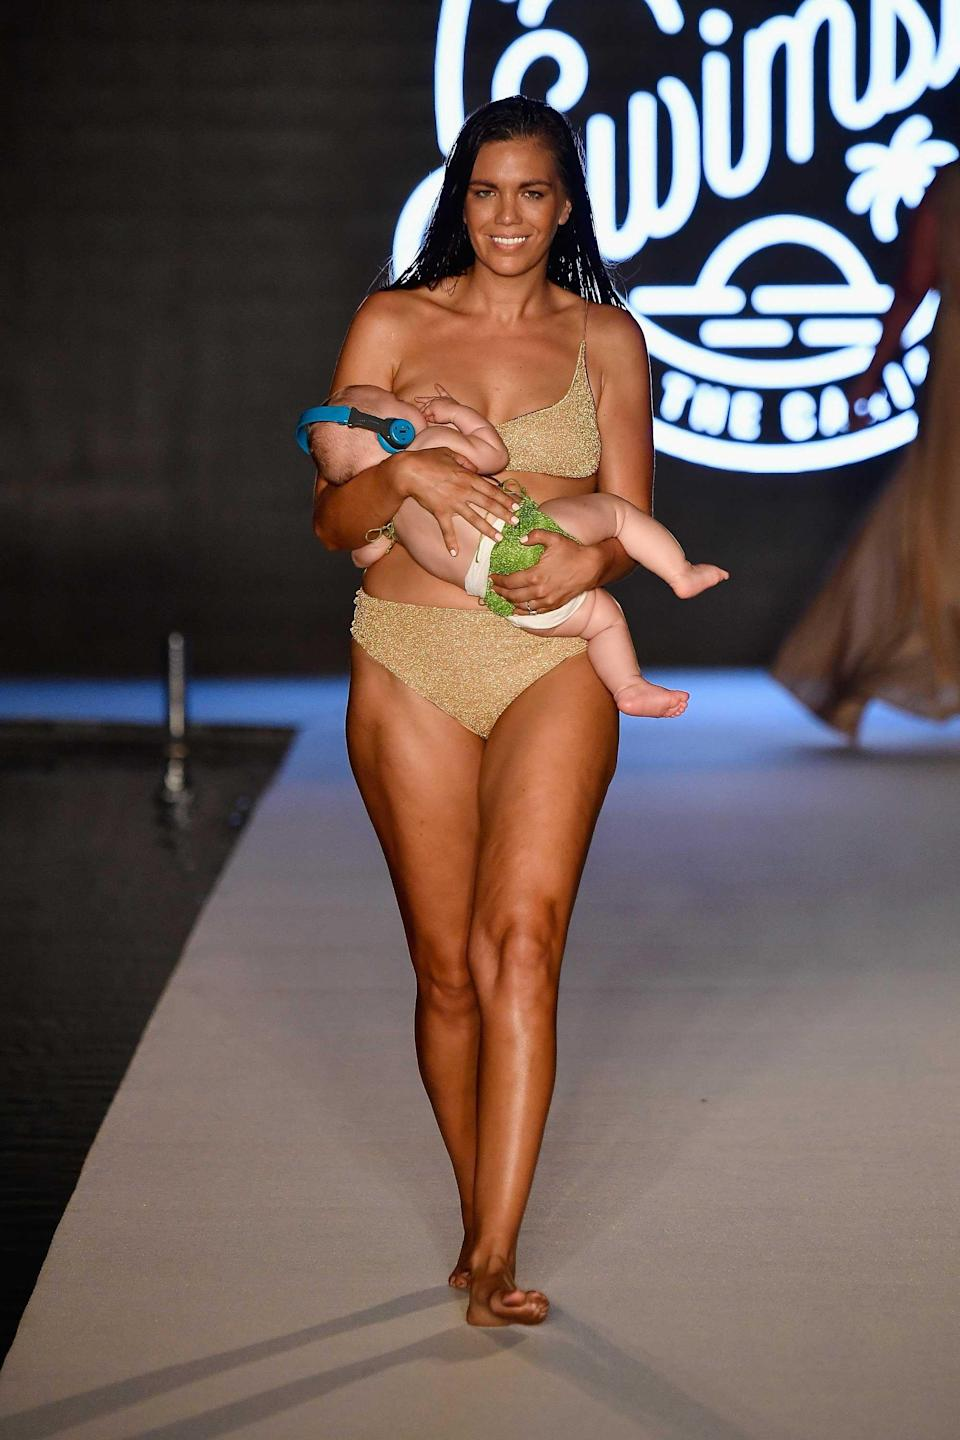 <p>Model Mara Martin walks the runway breastfeeding her baby for the 2018 <em>Sports Illustrated</em> swimsuit show during the Paraiso Fashion Fair in Miami at the W South Beach hotel on July 15. (Photo: Alexander Tamargo/Getty Images for Sports Illustrated) </p>